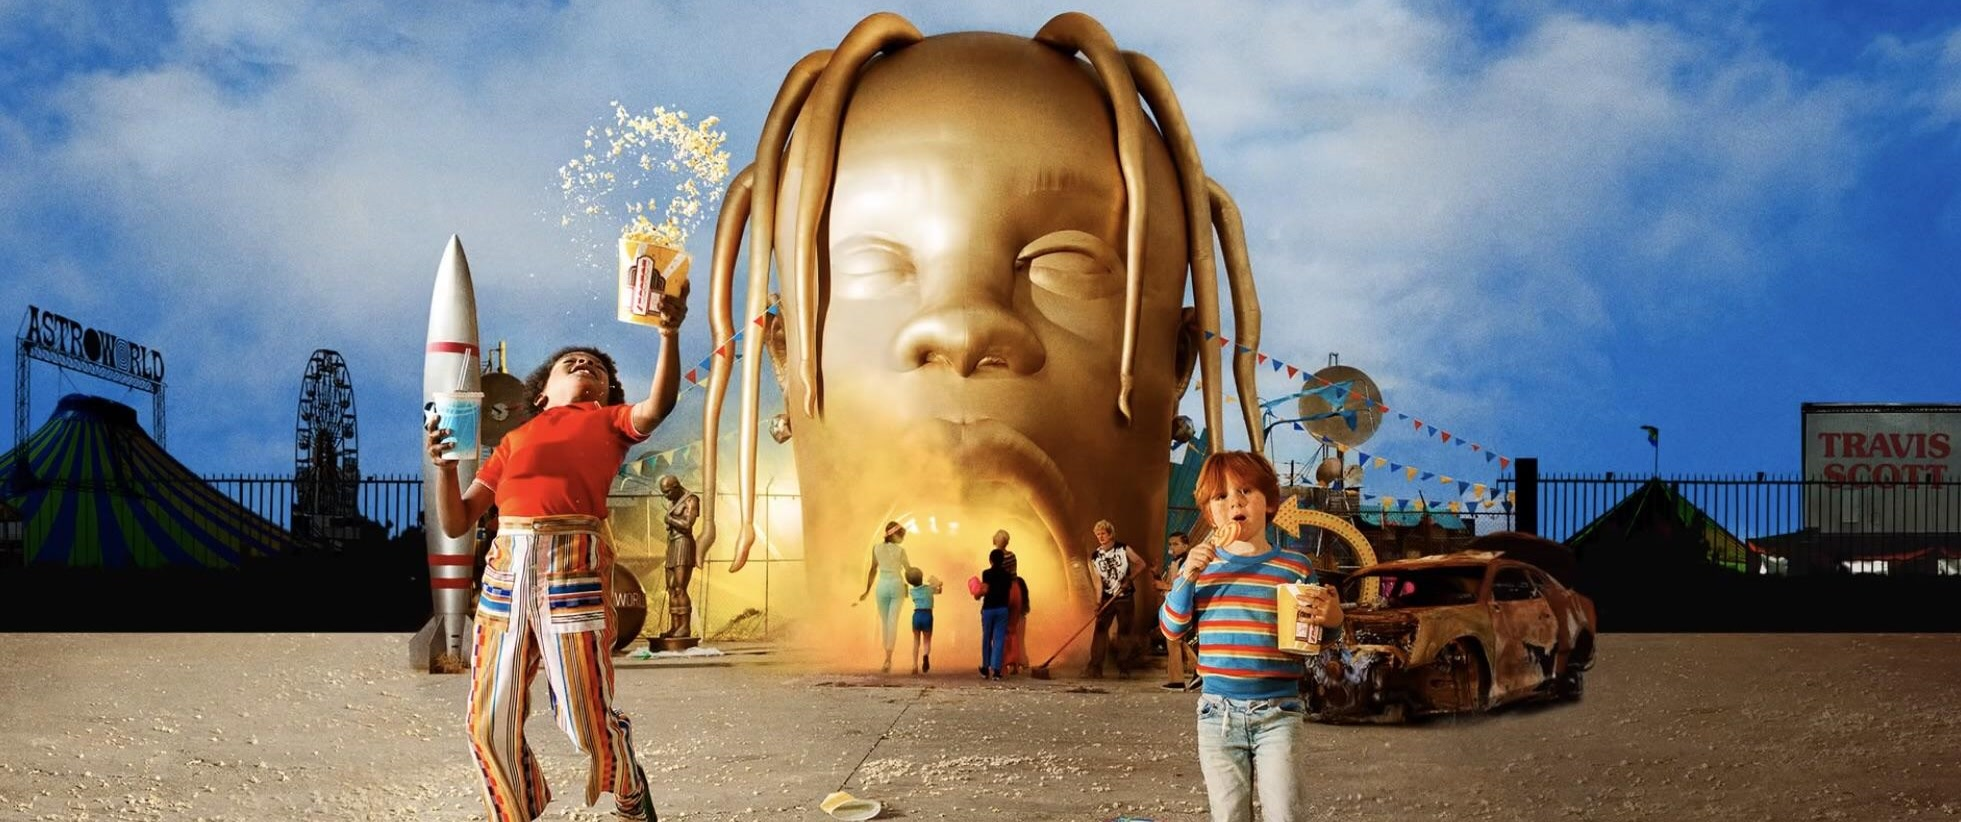 Album ASTROWORLD - Travis Scott